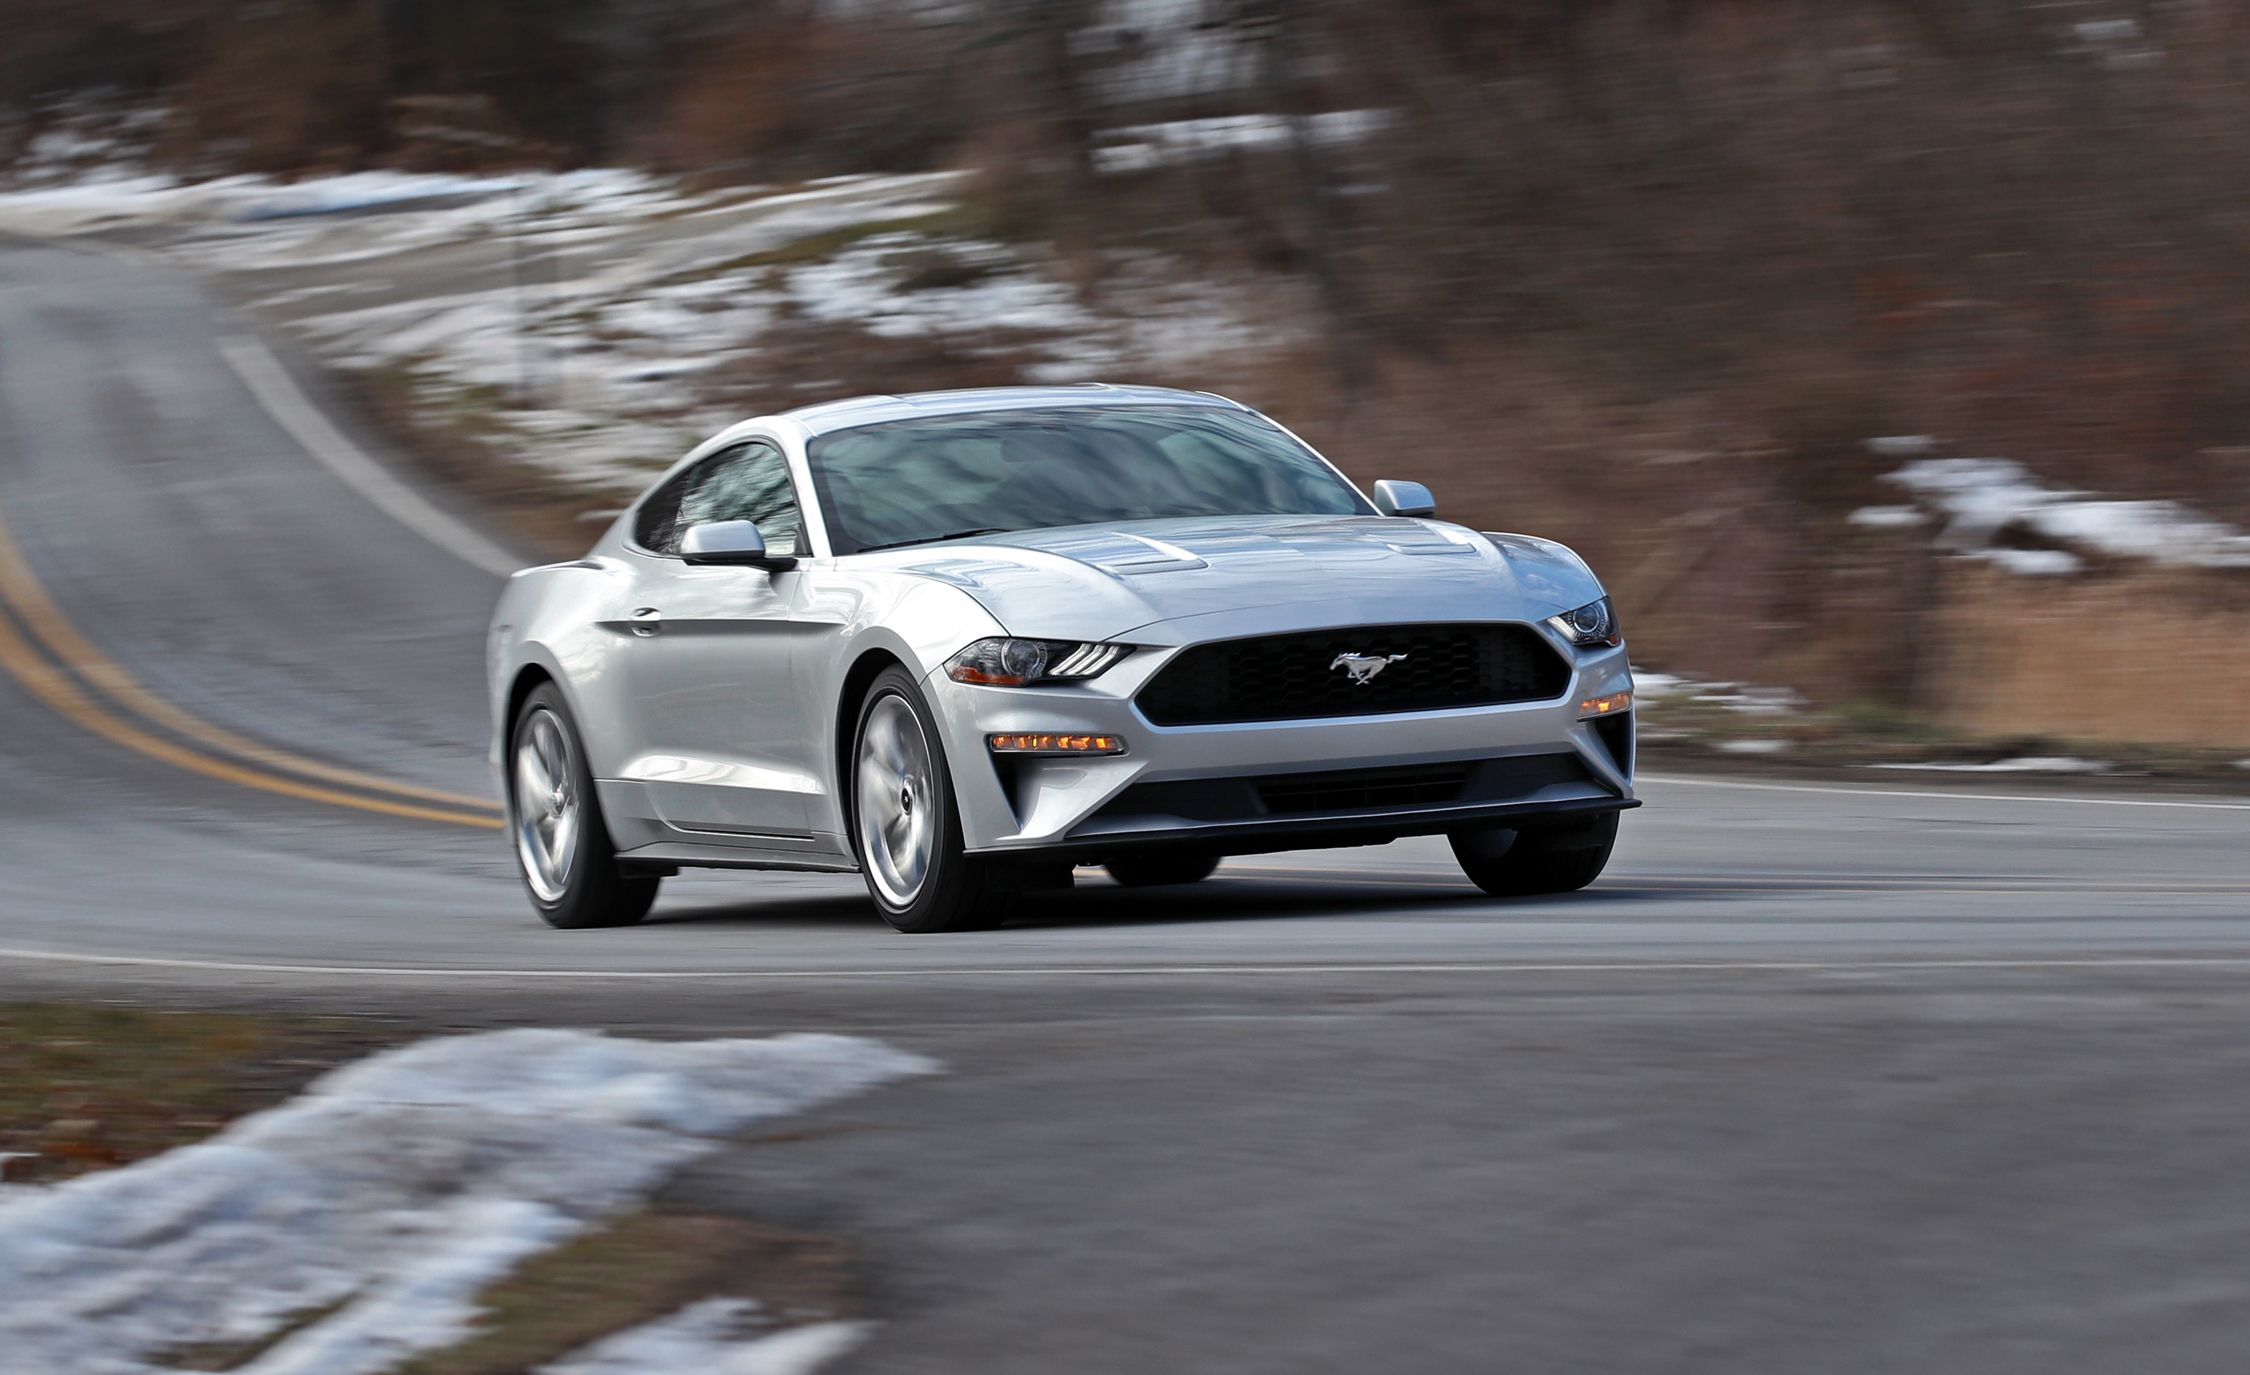 2018-ford-mustang-2-3l-ecoboost-manual-test-does-more-torque-help-the-turbo-model-review-car-and-driver